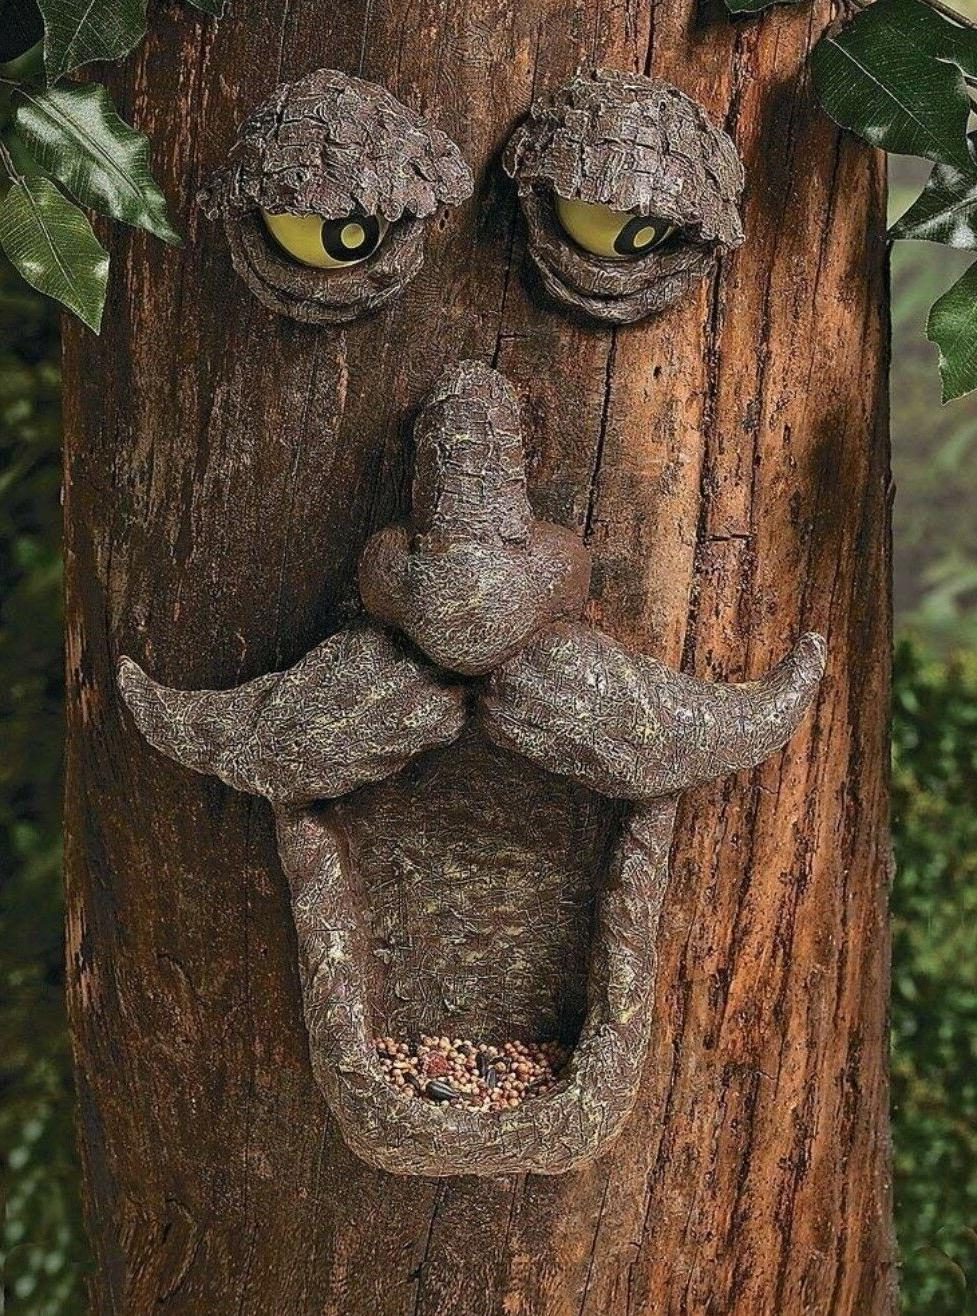 Tree Face Bird Feeder Garden Yard Decor Painted Eyes Glows i